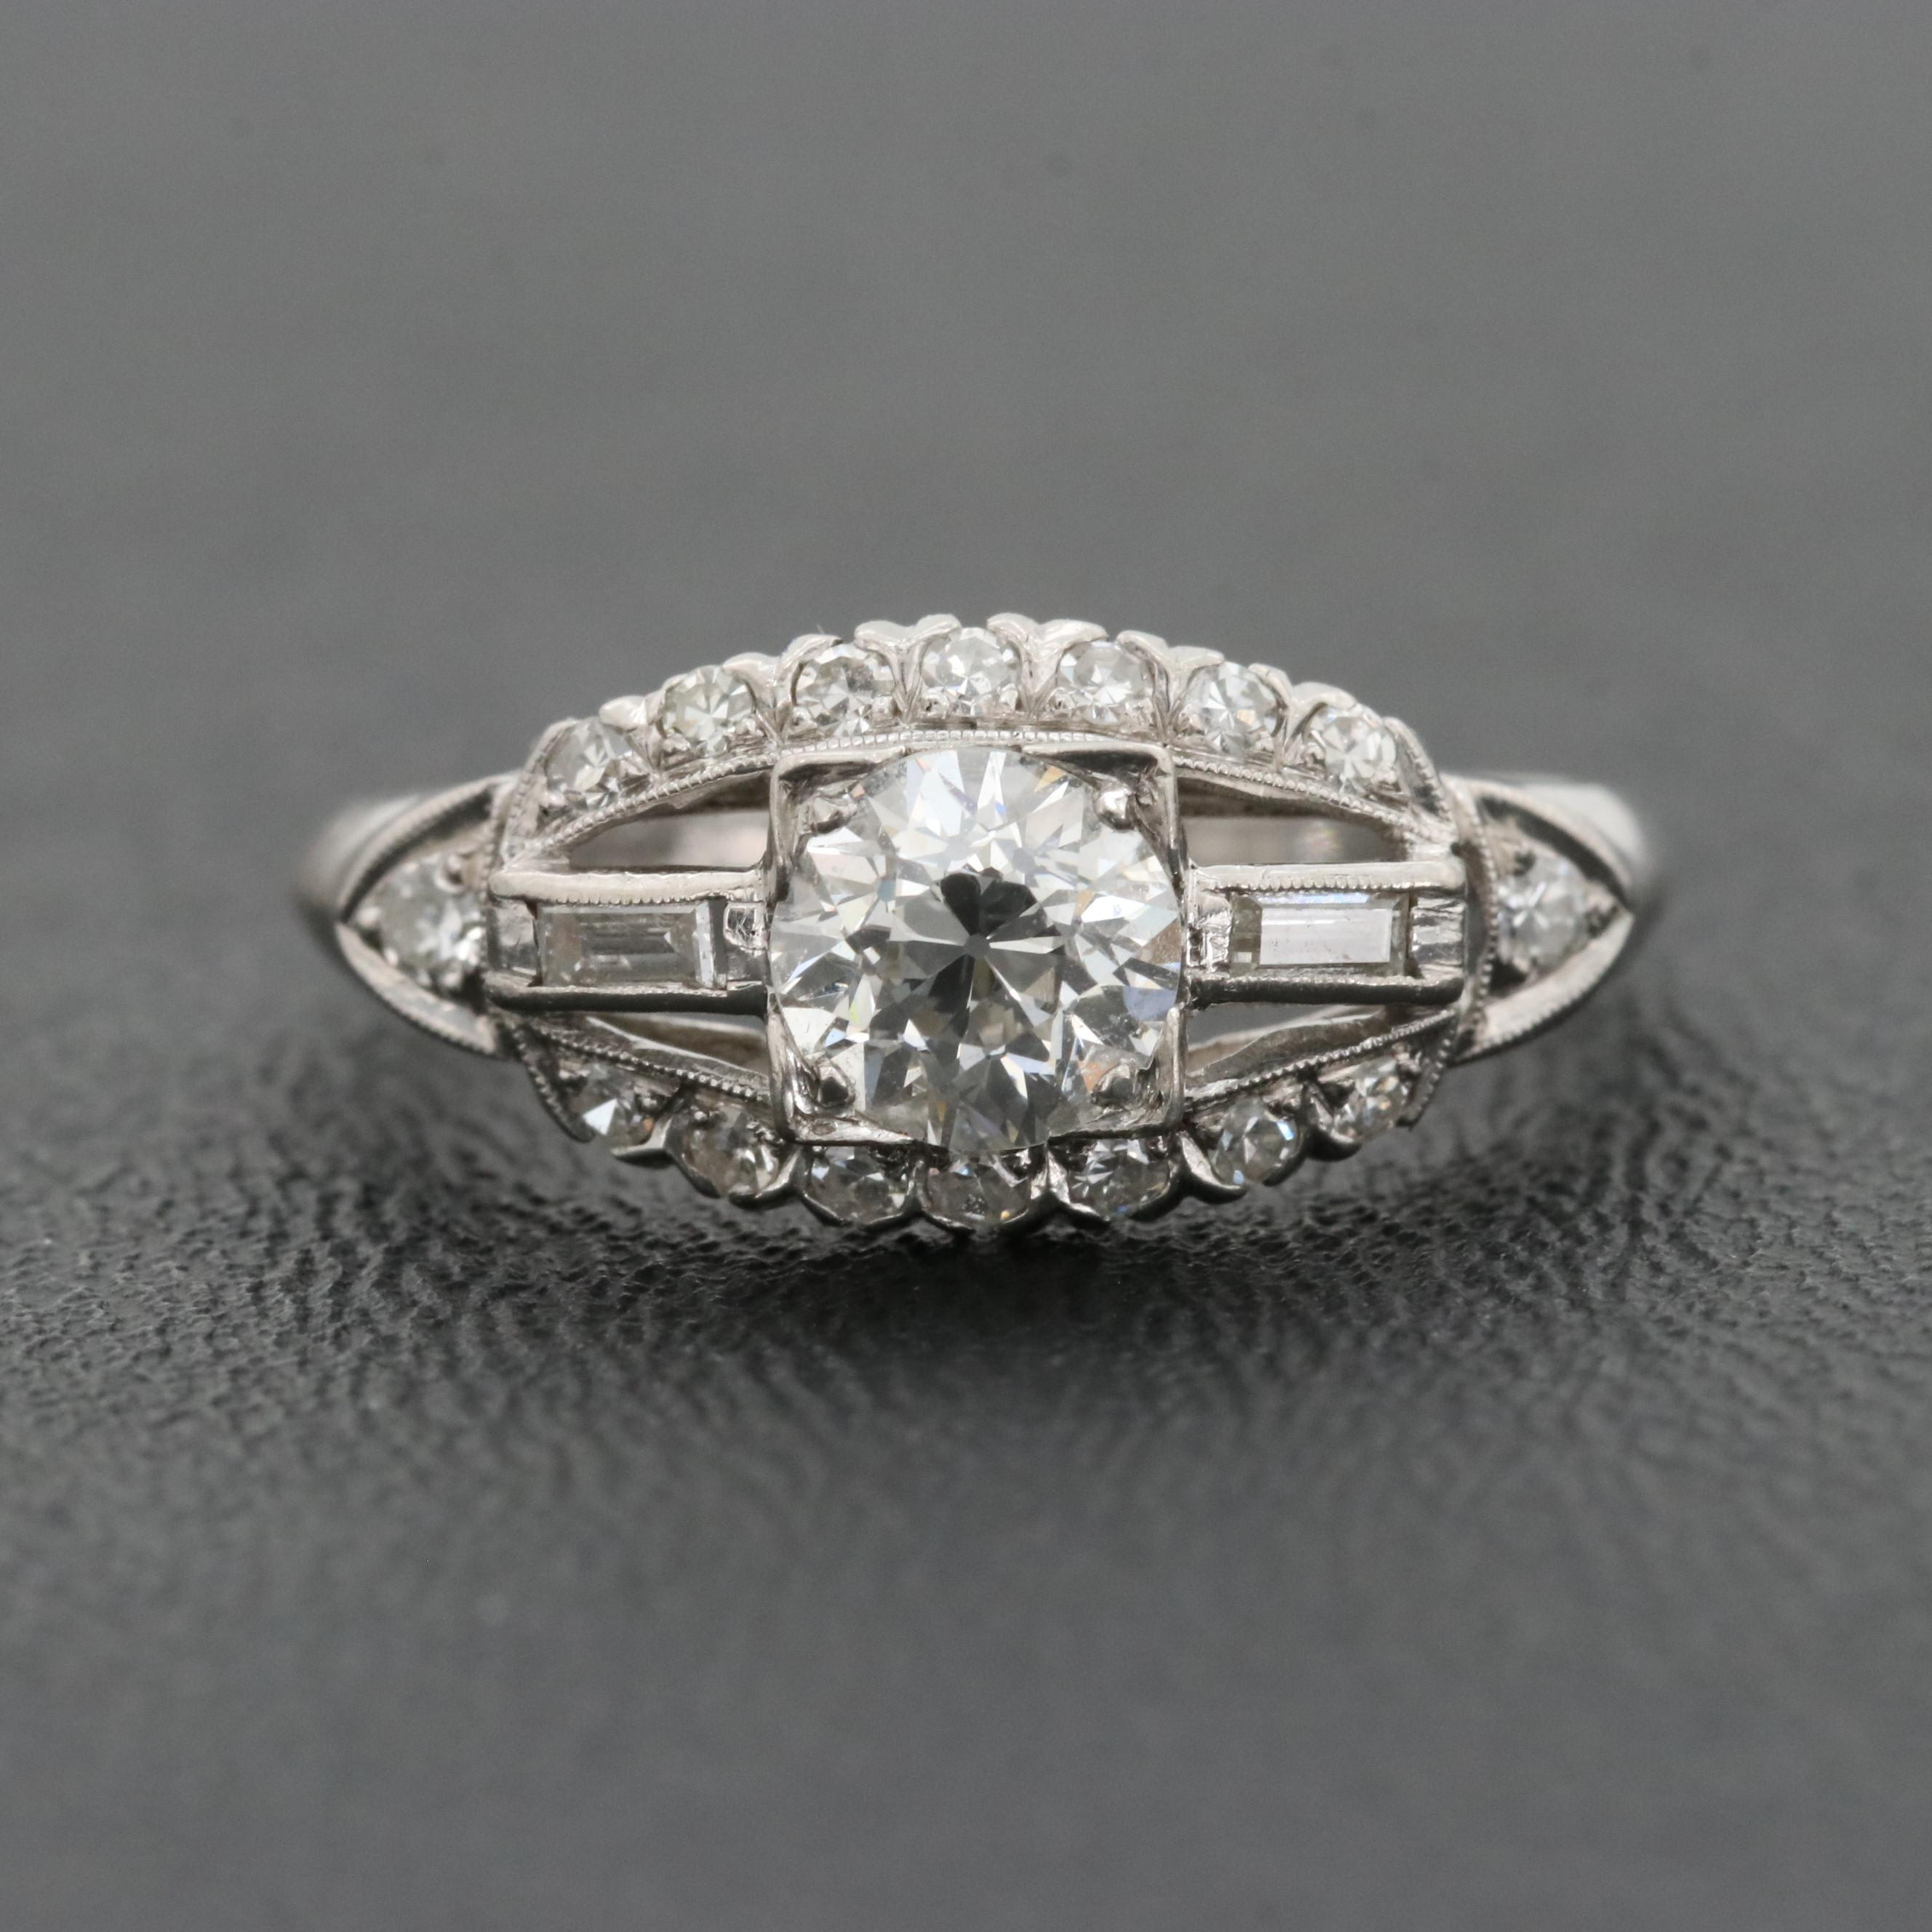 Platinum and Palladium Diamond Ring